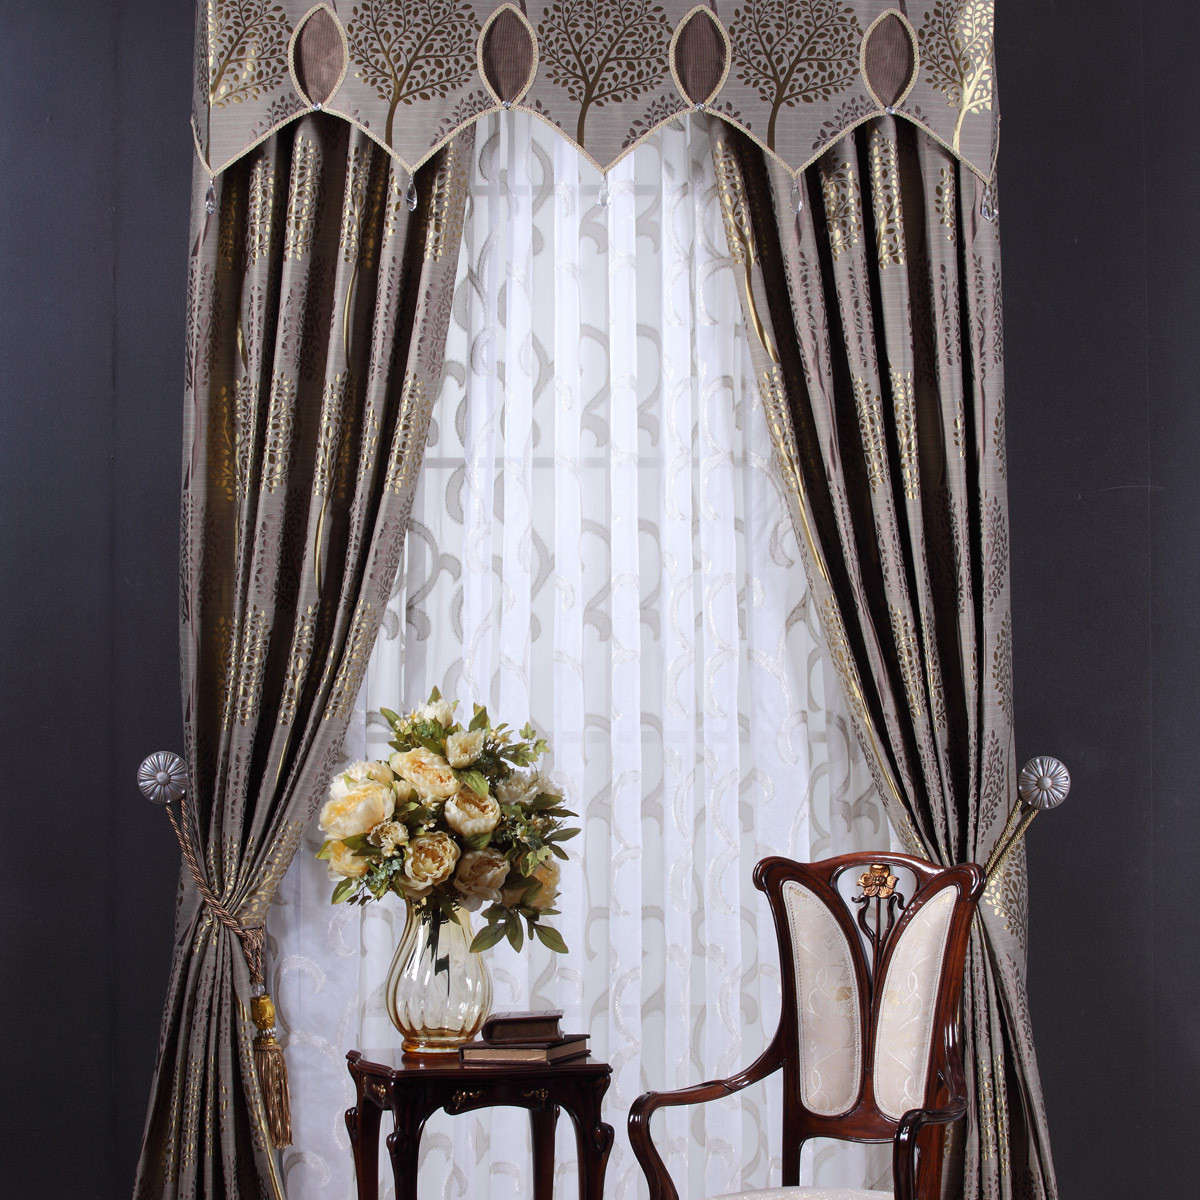 news-bedroom-window-curtains-on-cortina-home-curtain-design-pictures-of-curtain-designs-in-nigeria-pictures-of-curtains-designs